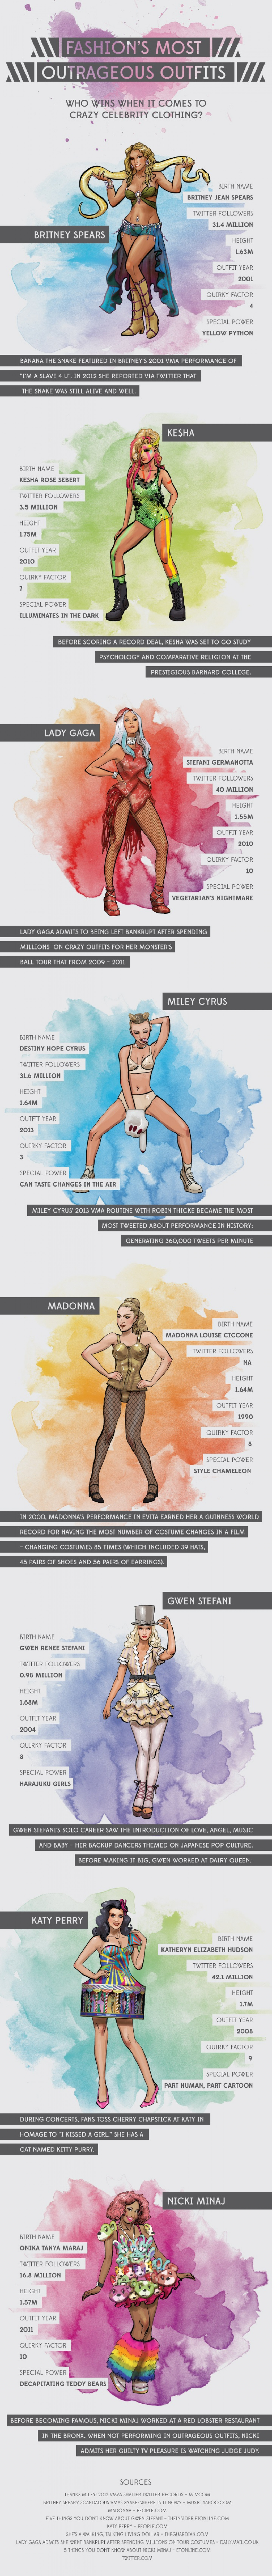 Fashion's Most Outrageous Outfits  Infographic